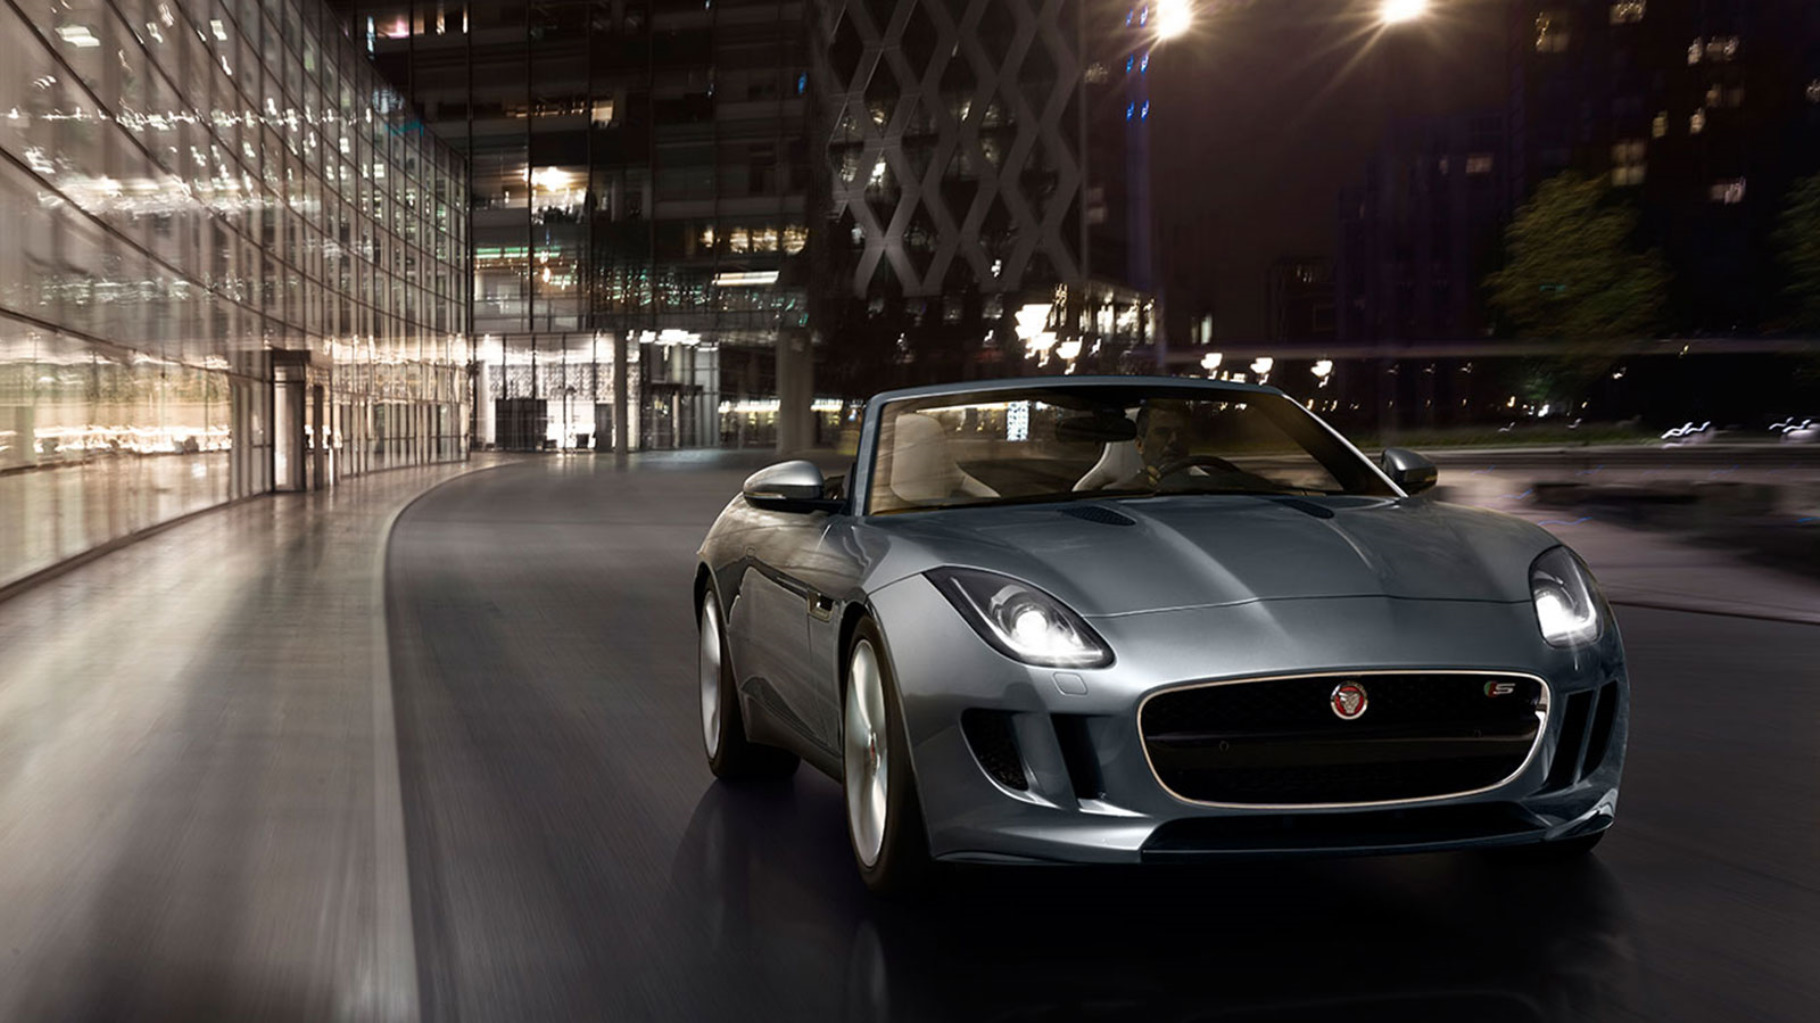 F-TYPE parked next to building at night.